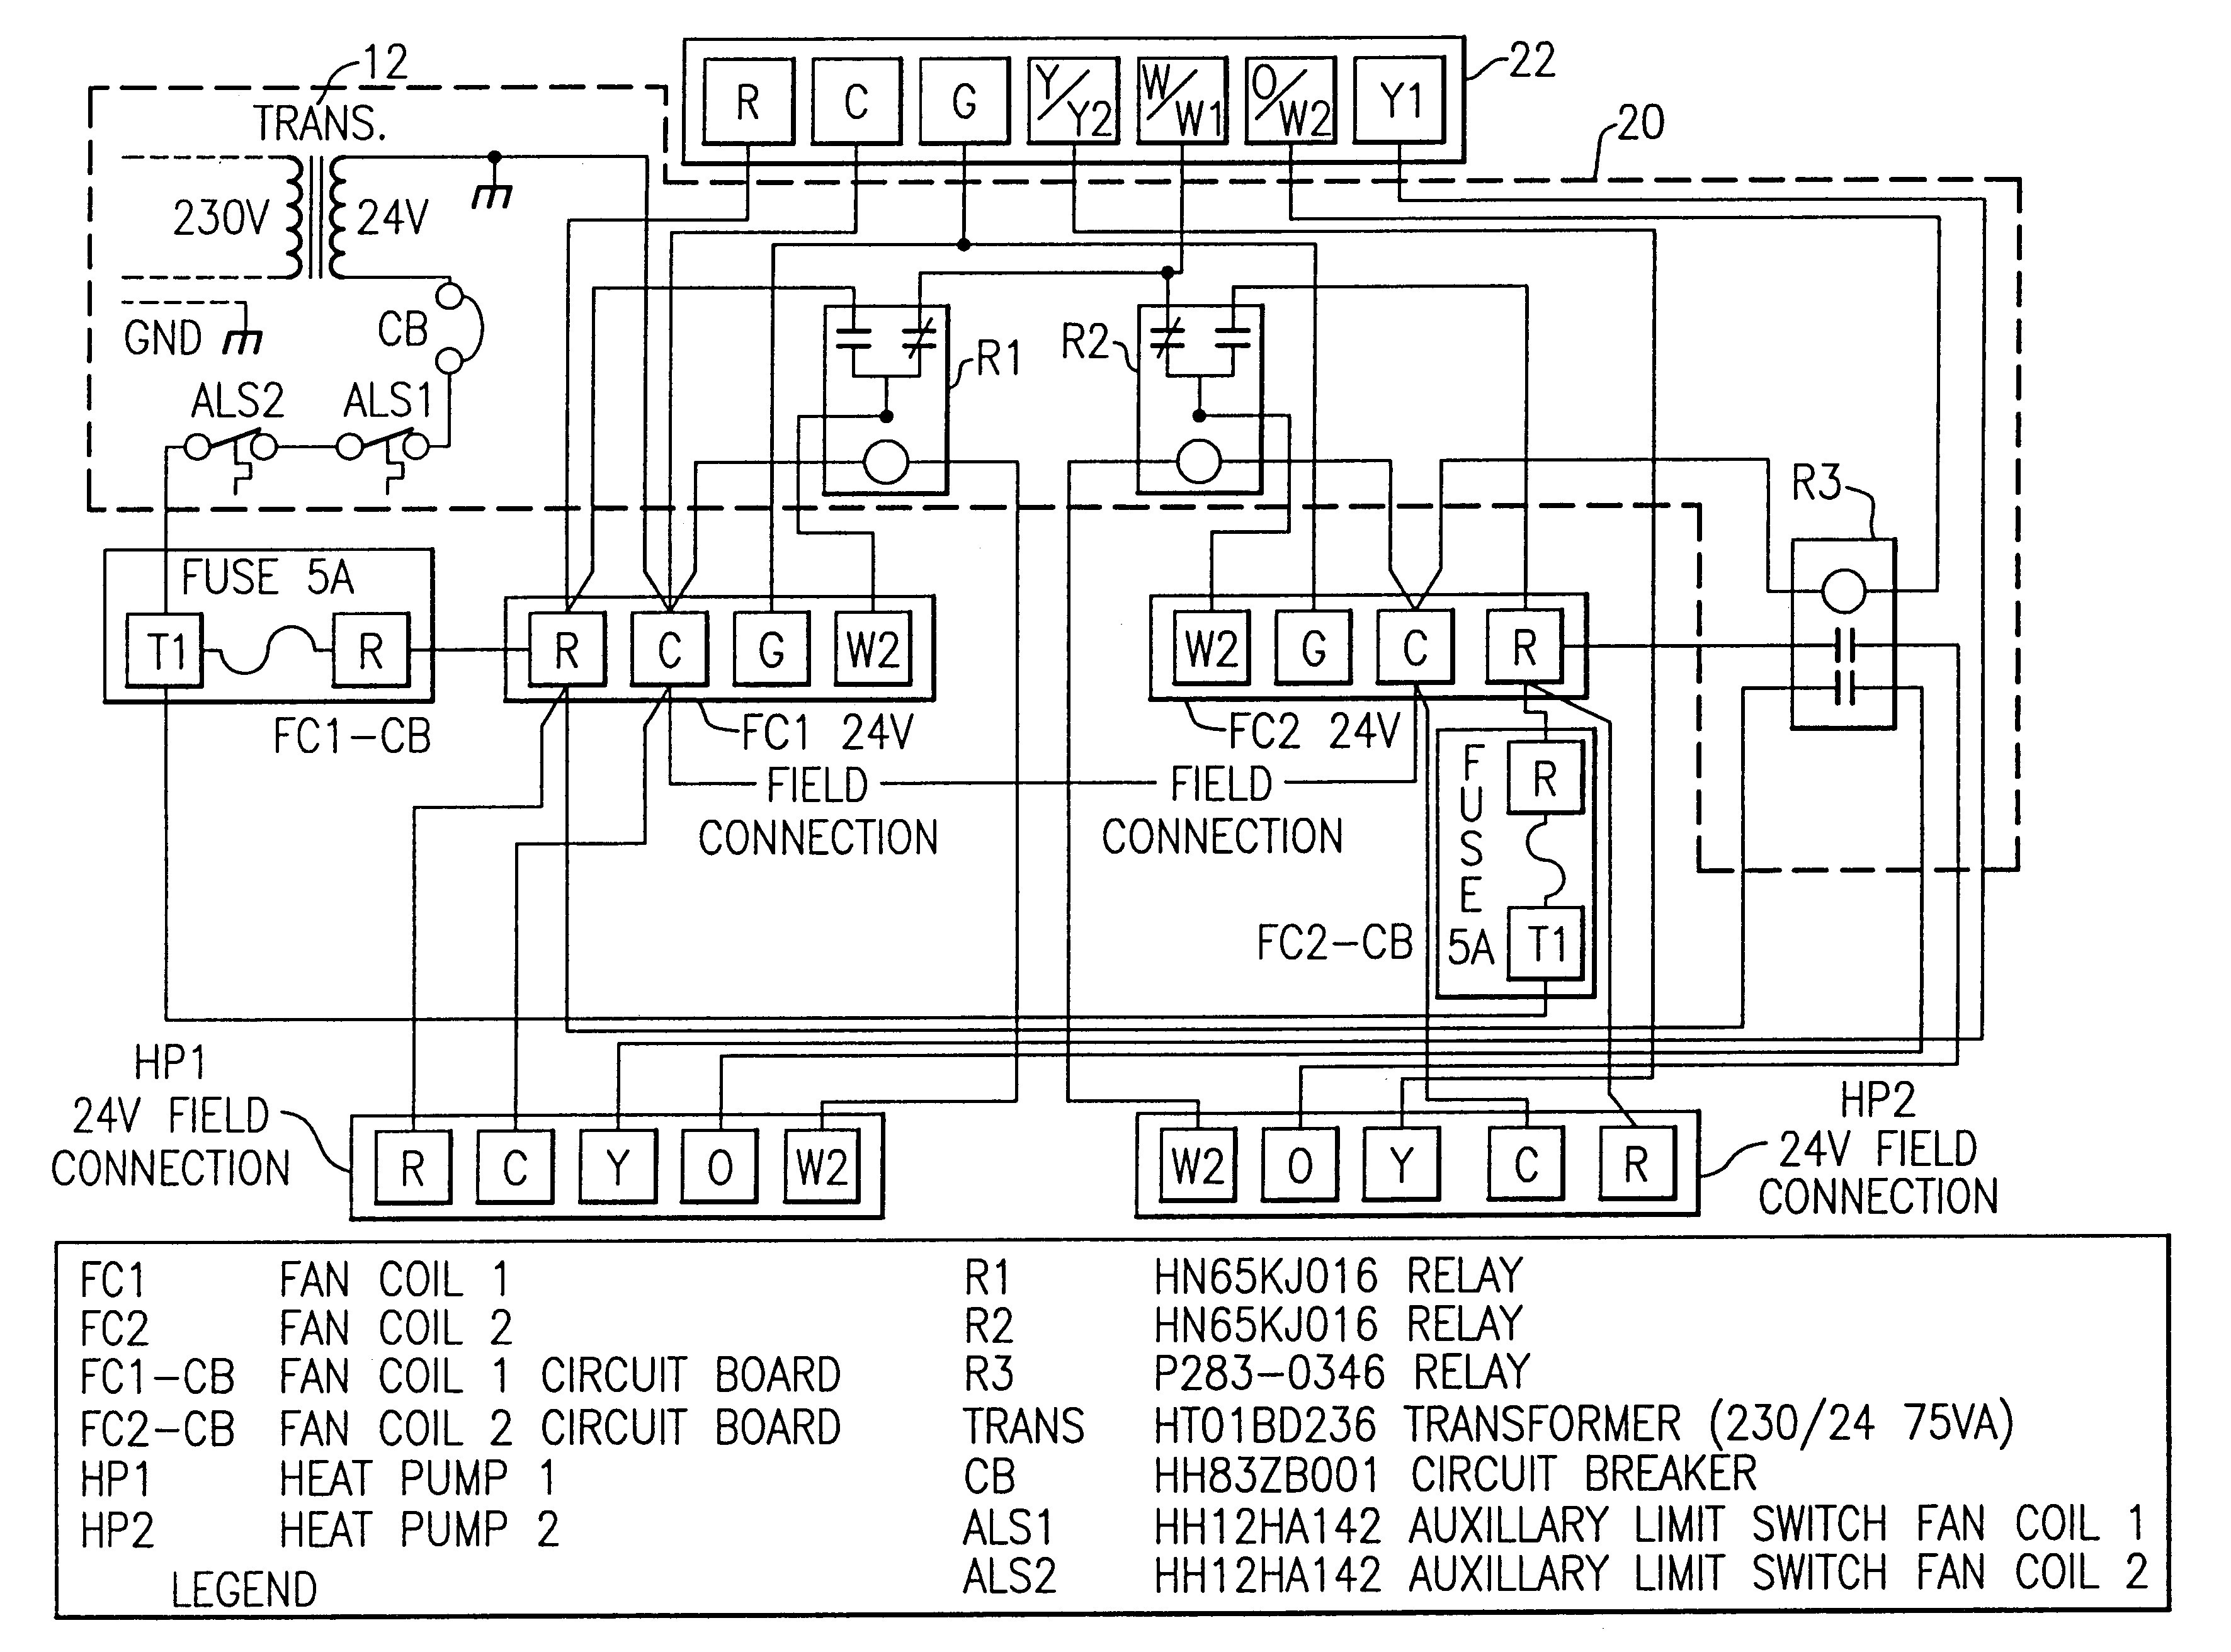 Air Conditioner Diagram At York Wiring Diagrams Conditioners For Package Unit 3